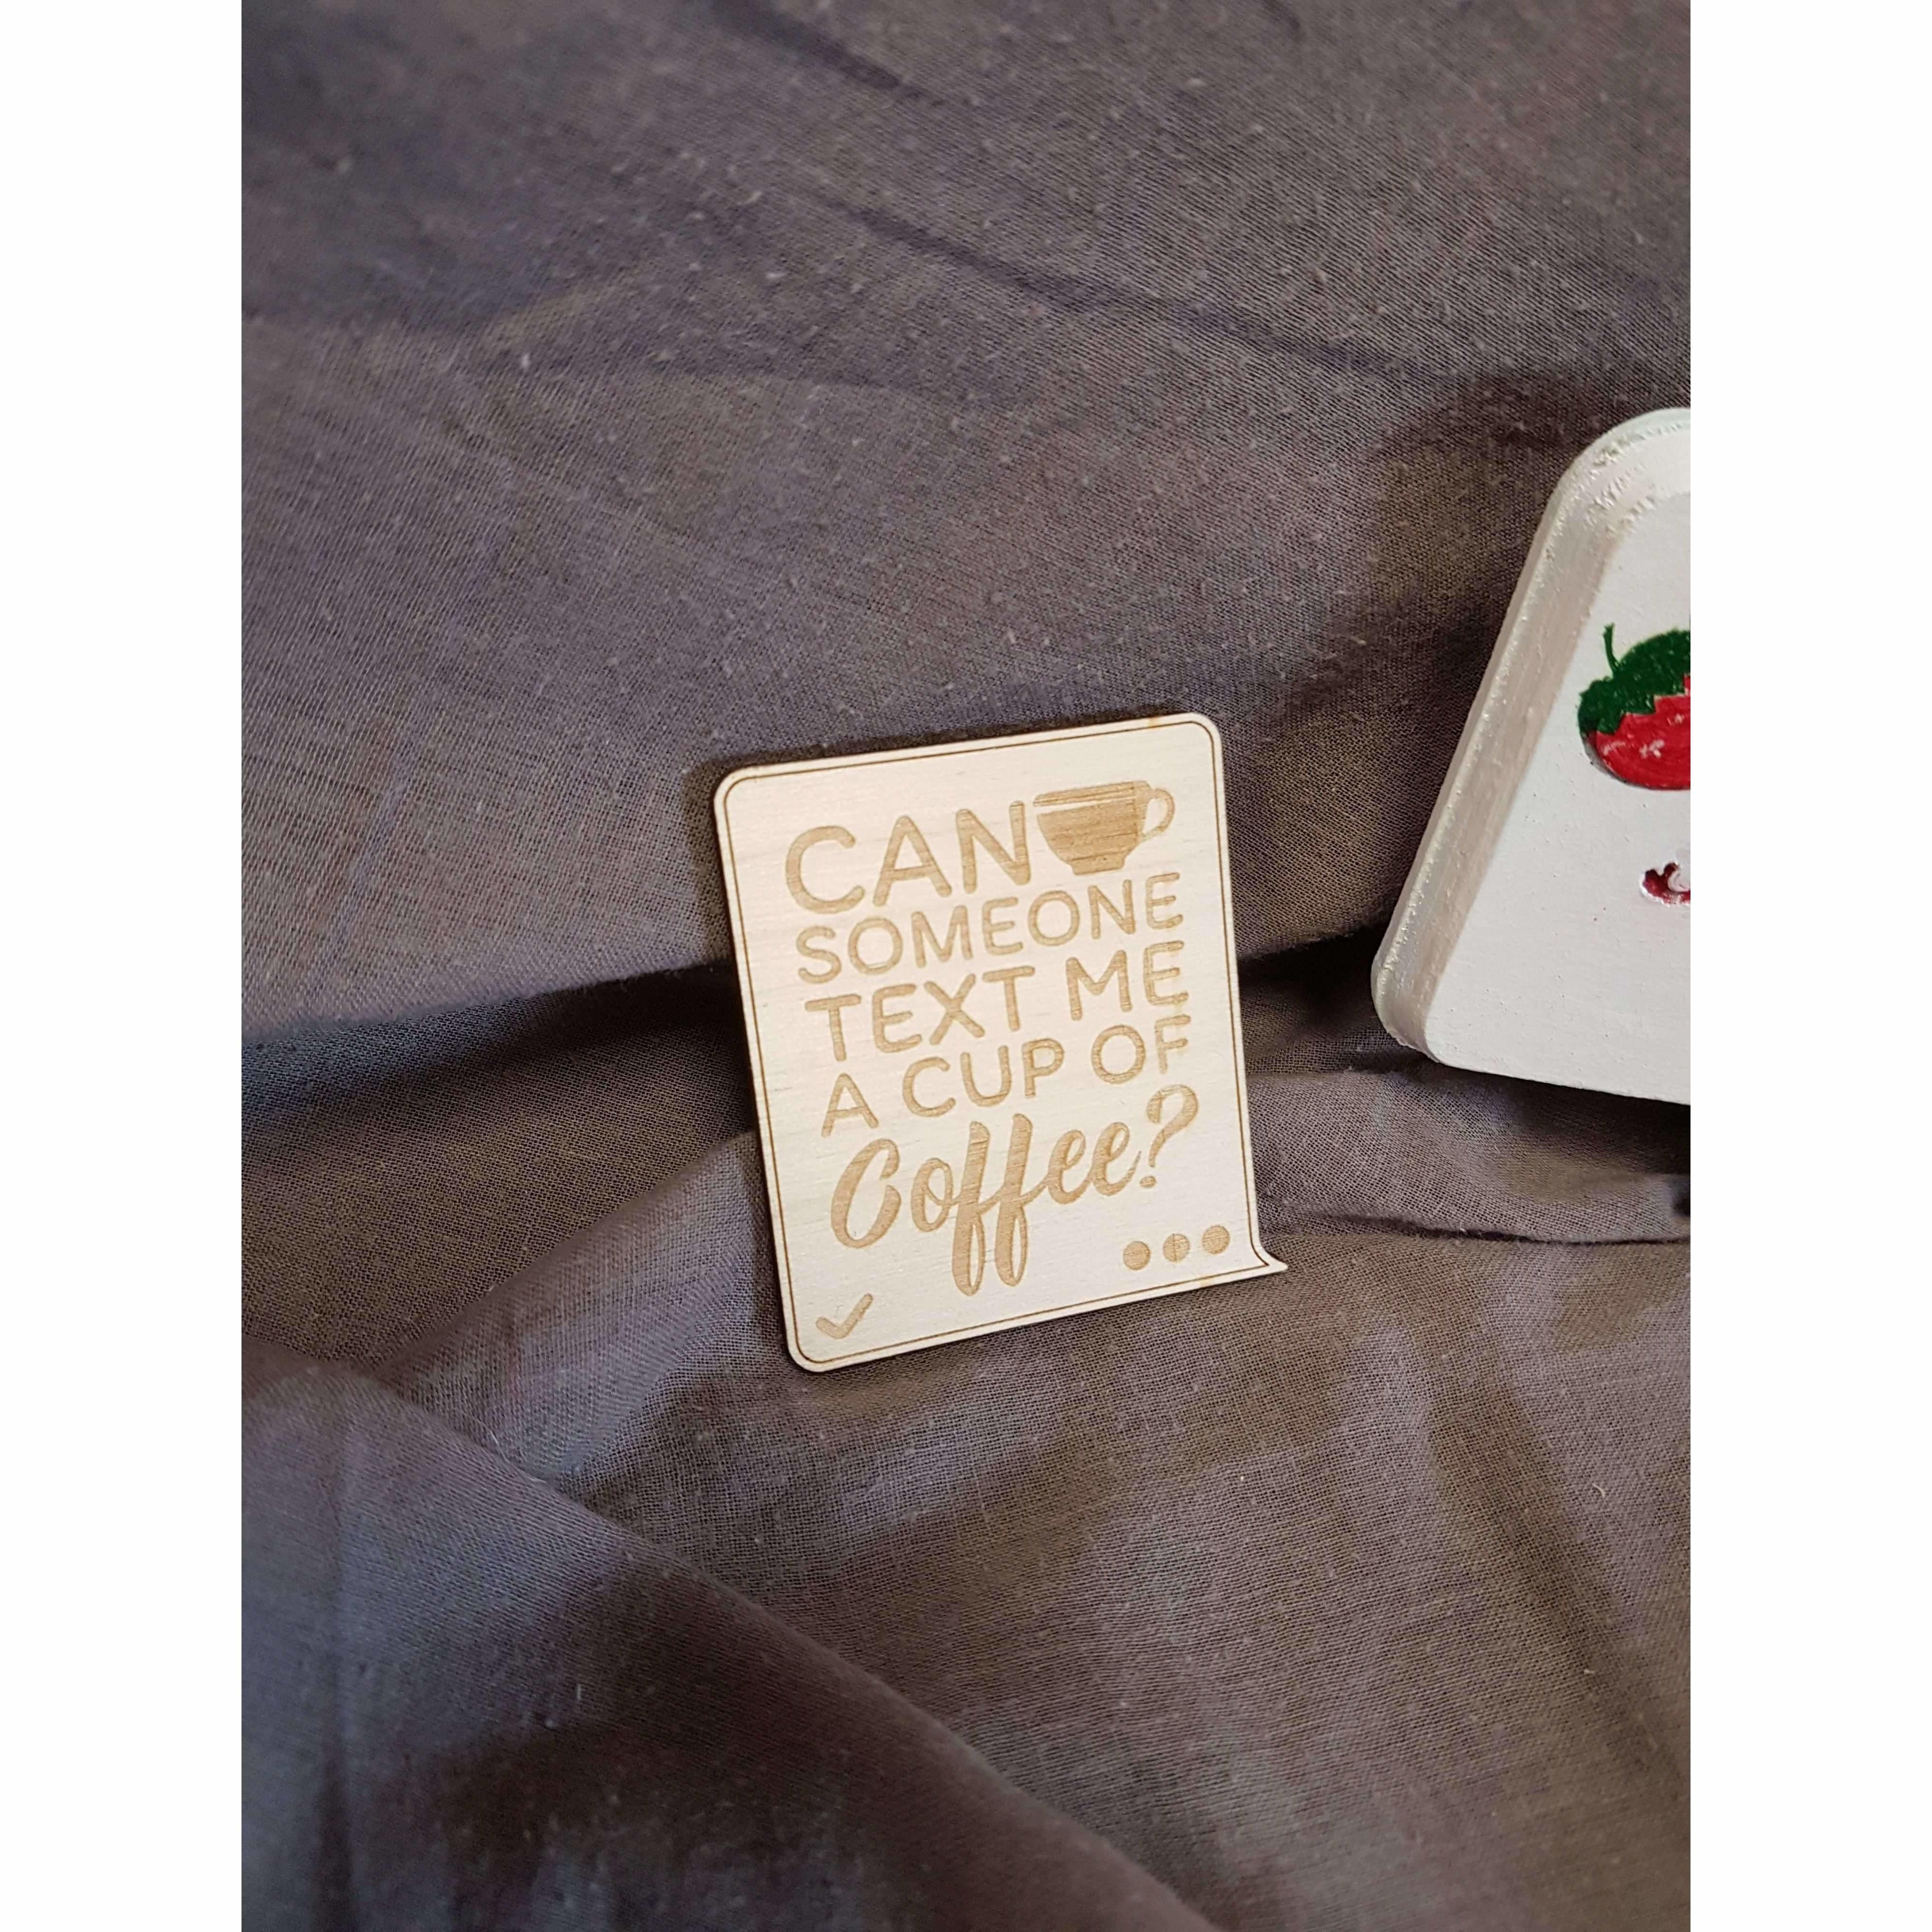 Red Berry Crafts Ltd:Text me a coffee fridge magnet